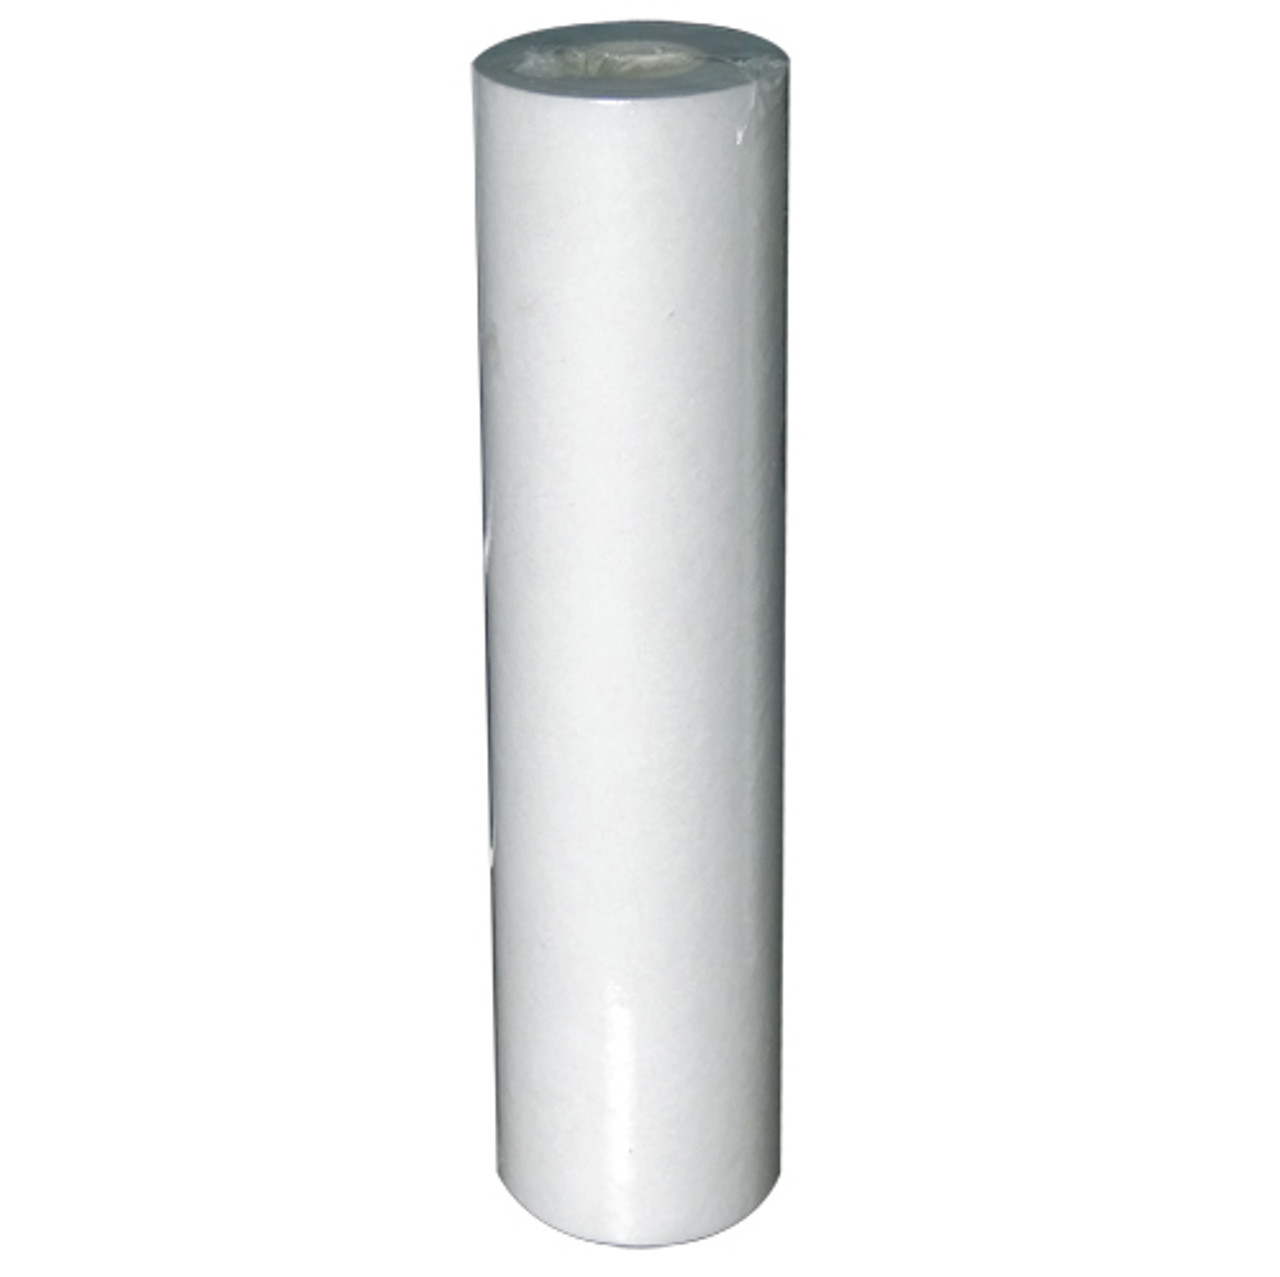 filter for Extreme series; available in 10 microns and 5 microns